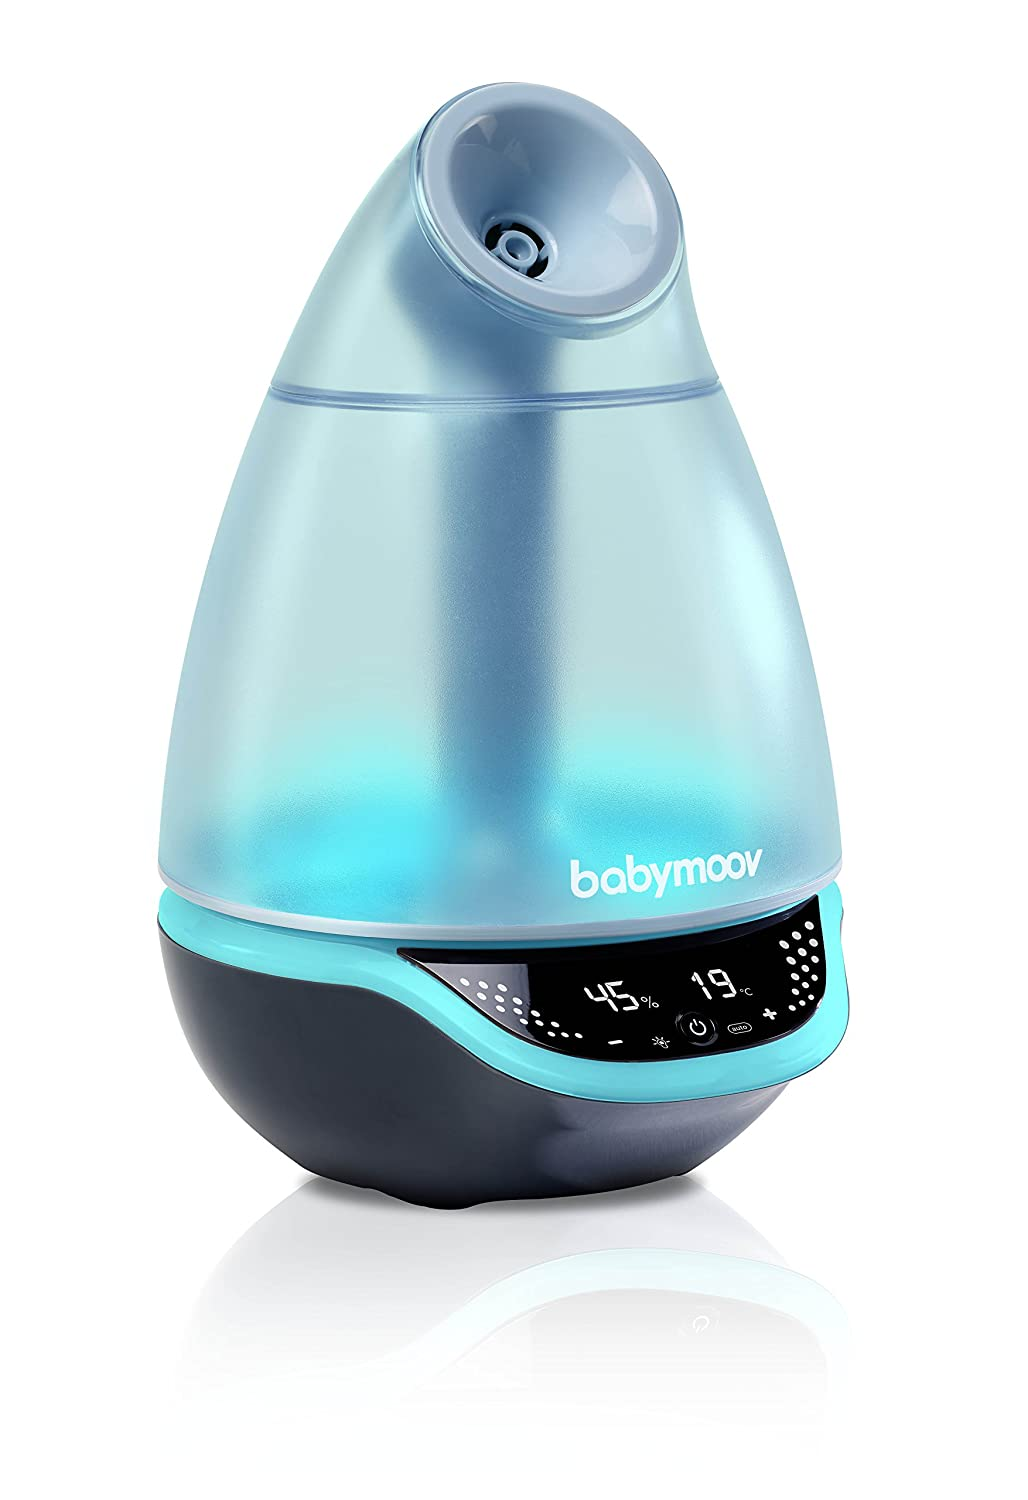 Babymoov Hygro Plus | 3-in-1 Humidifier, Multicolored Night Light & Essential Oil Diffuser | Automatic Operation for Easy Use and Care (NO FILTER NEEDED) A047014